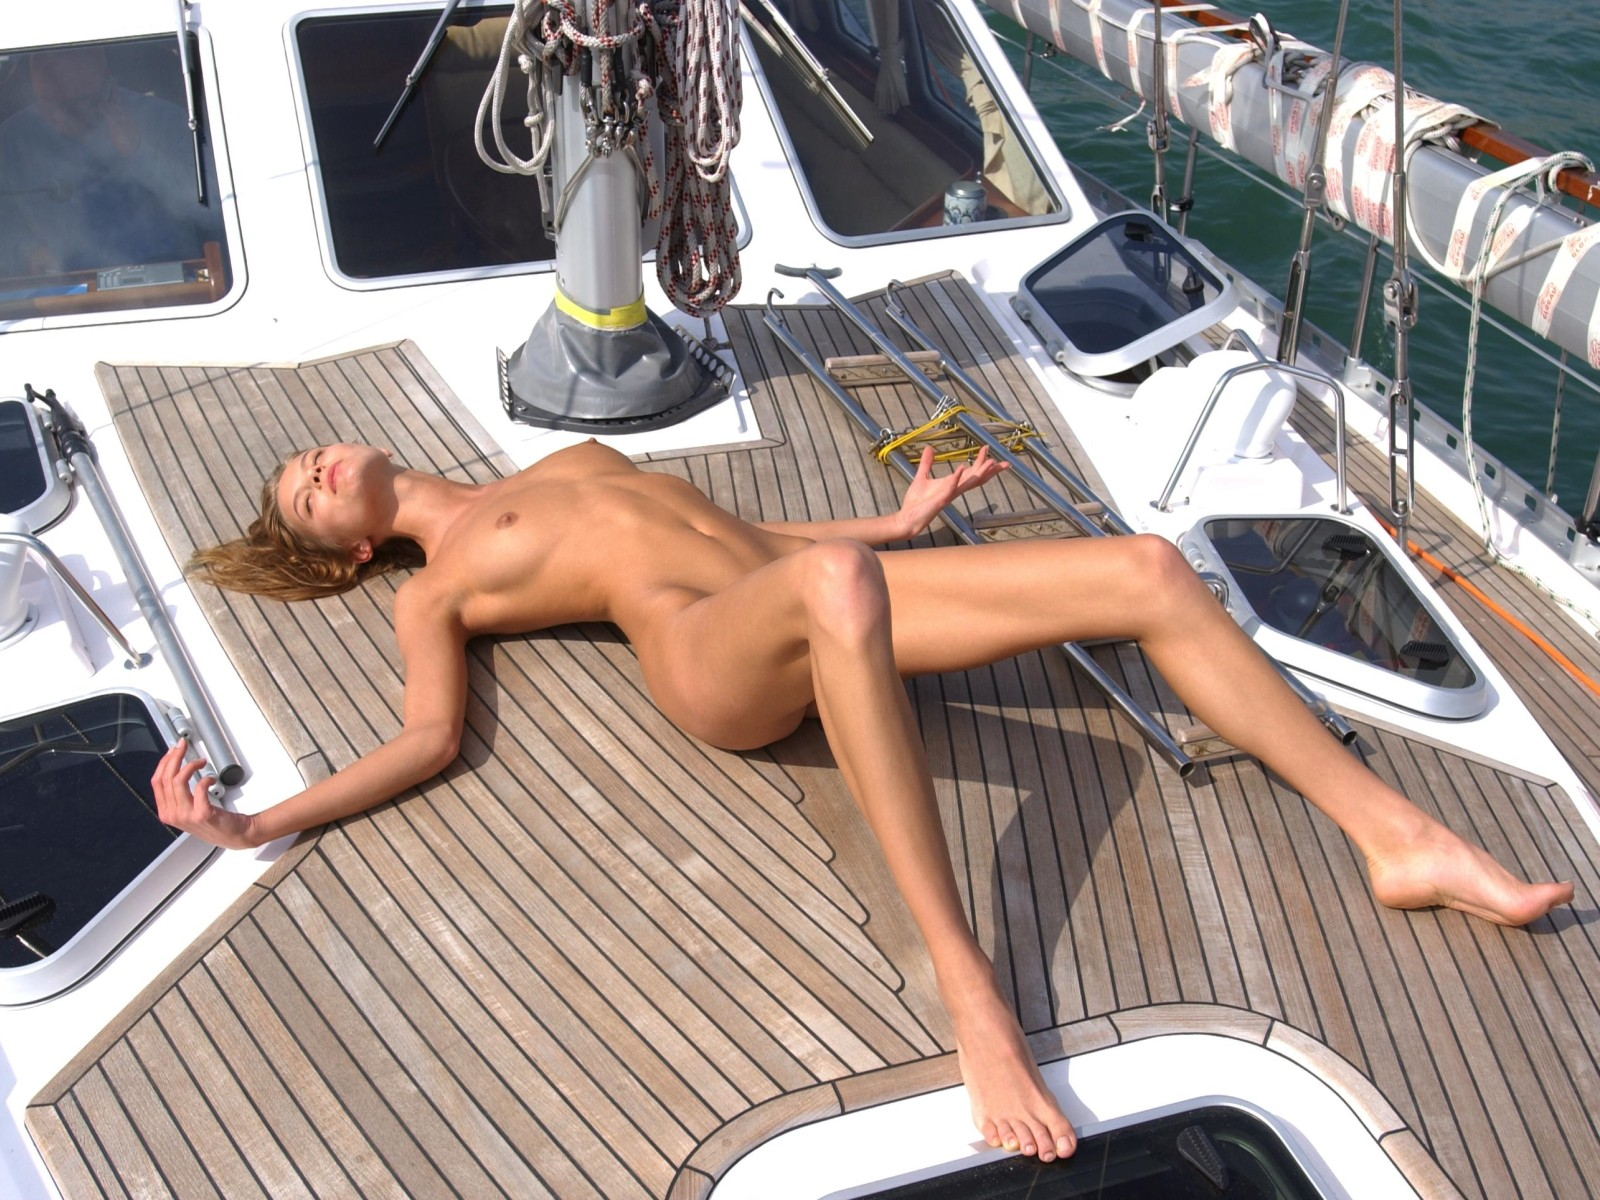 girls-on-boats-naked-naked-weman-pictures-for-free